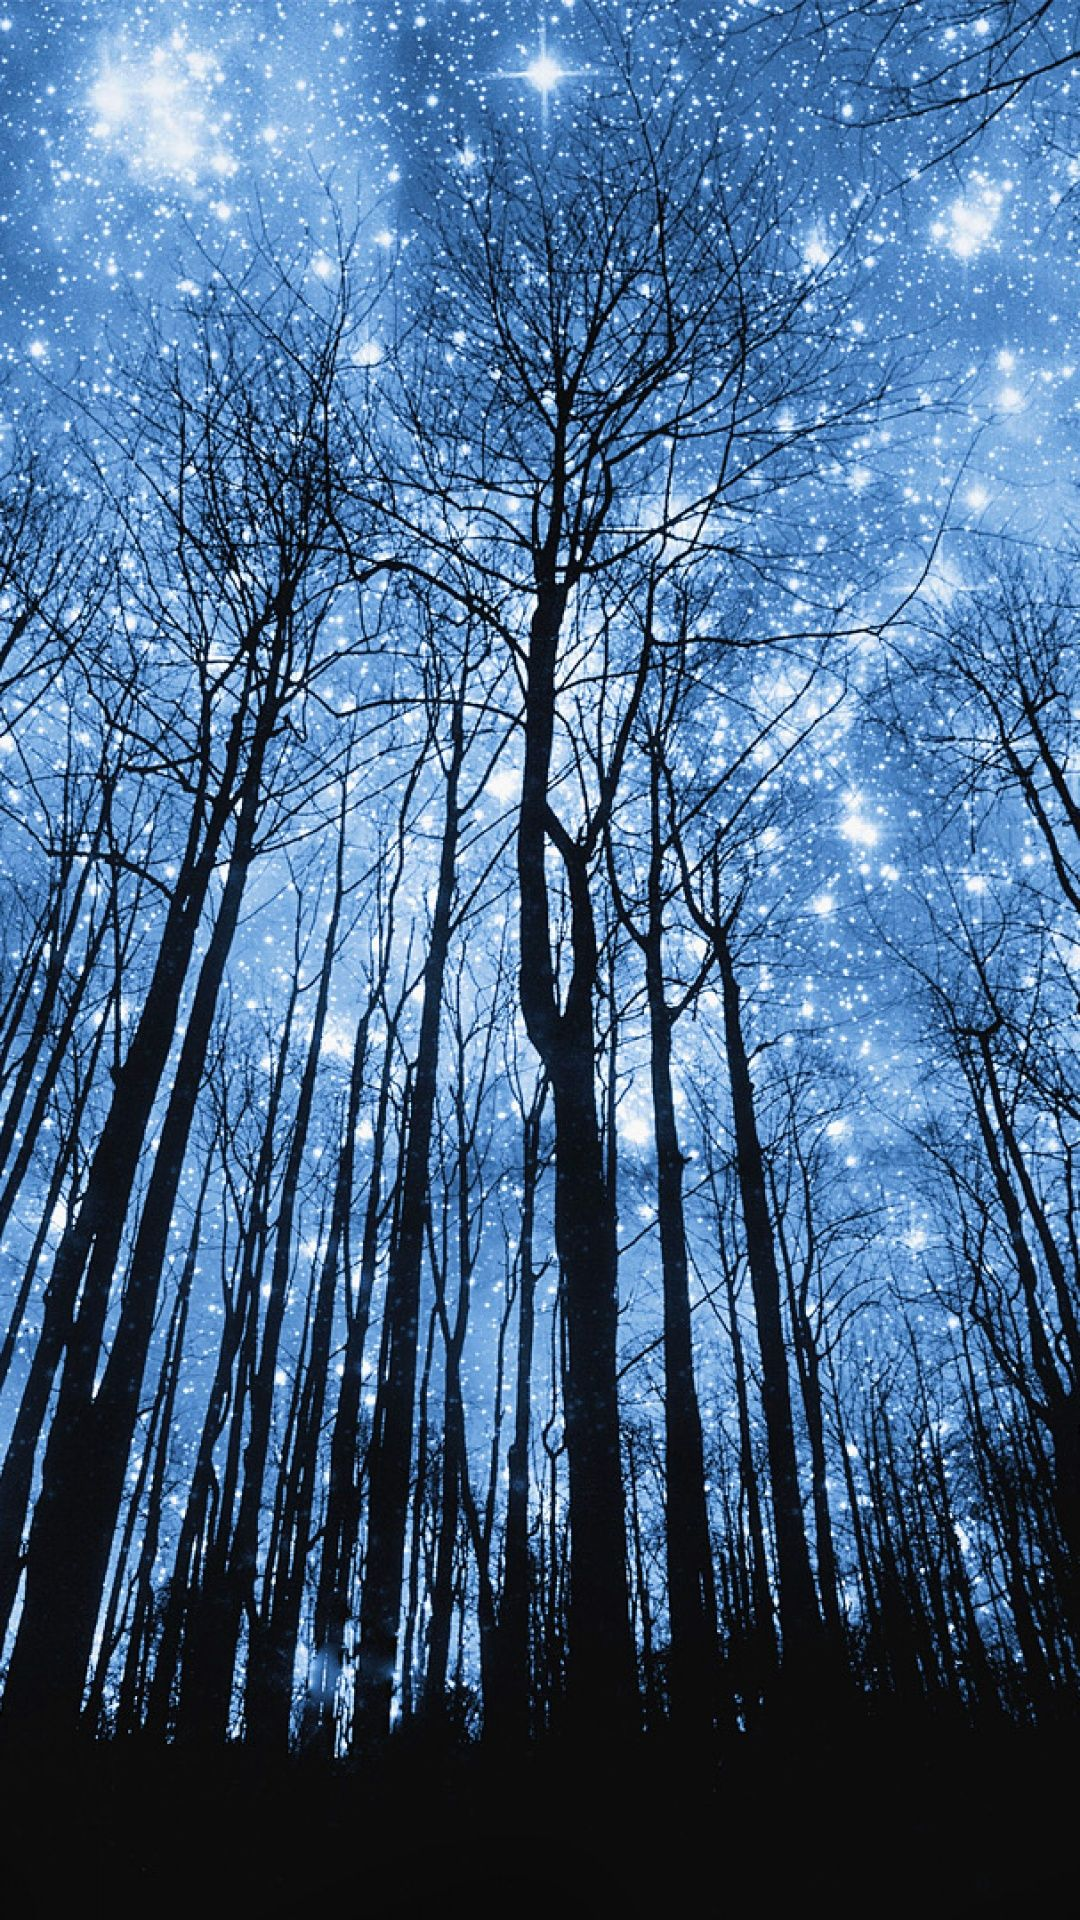 Forest in the Starry Night Night sky wallpaper, Starry